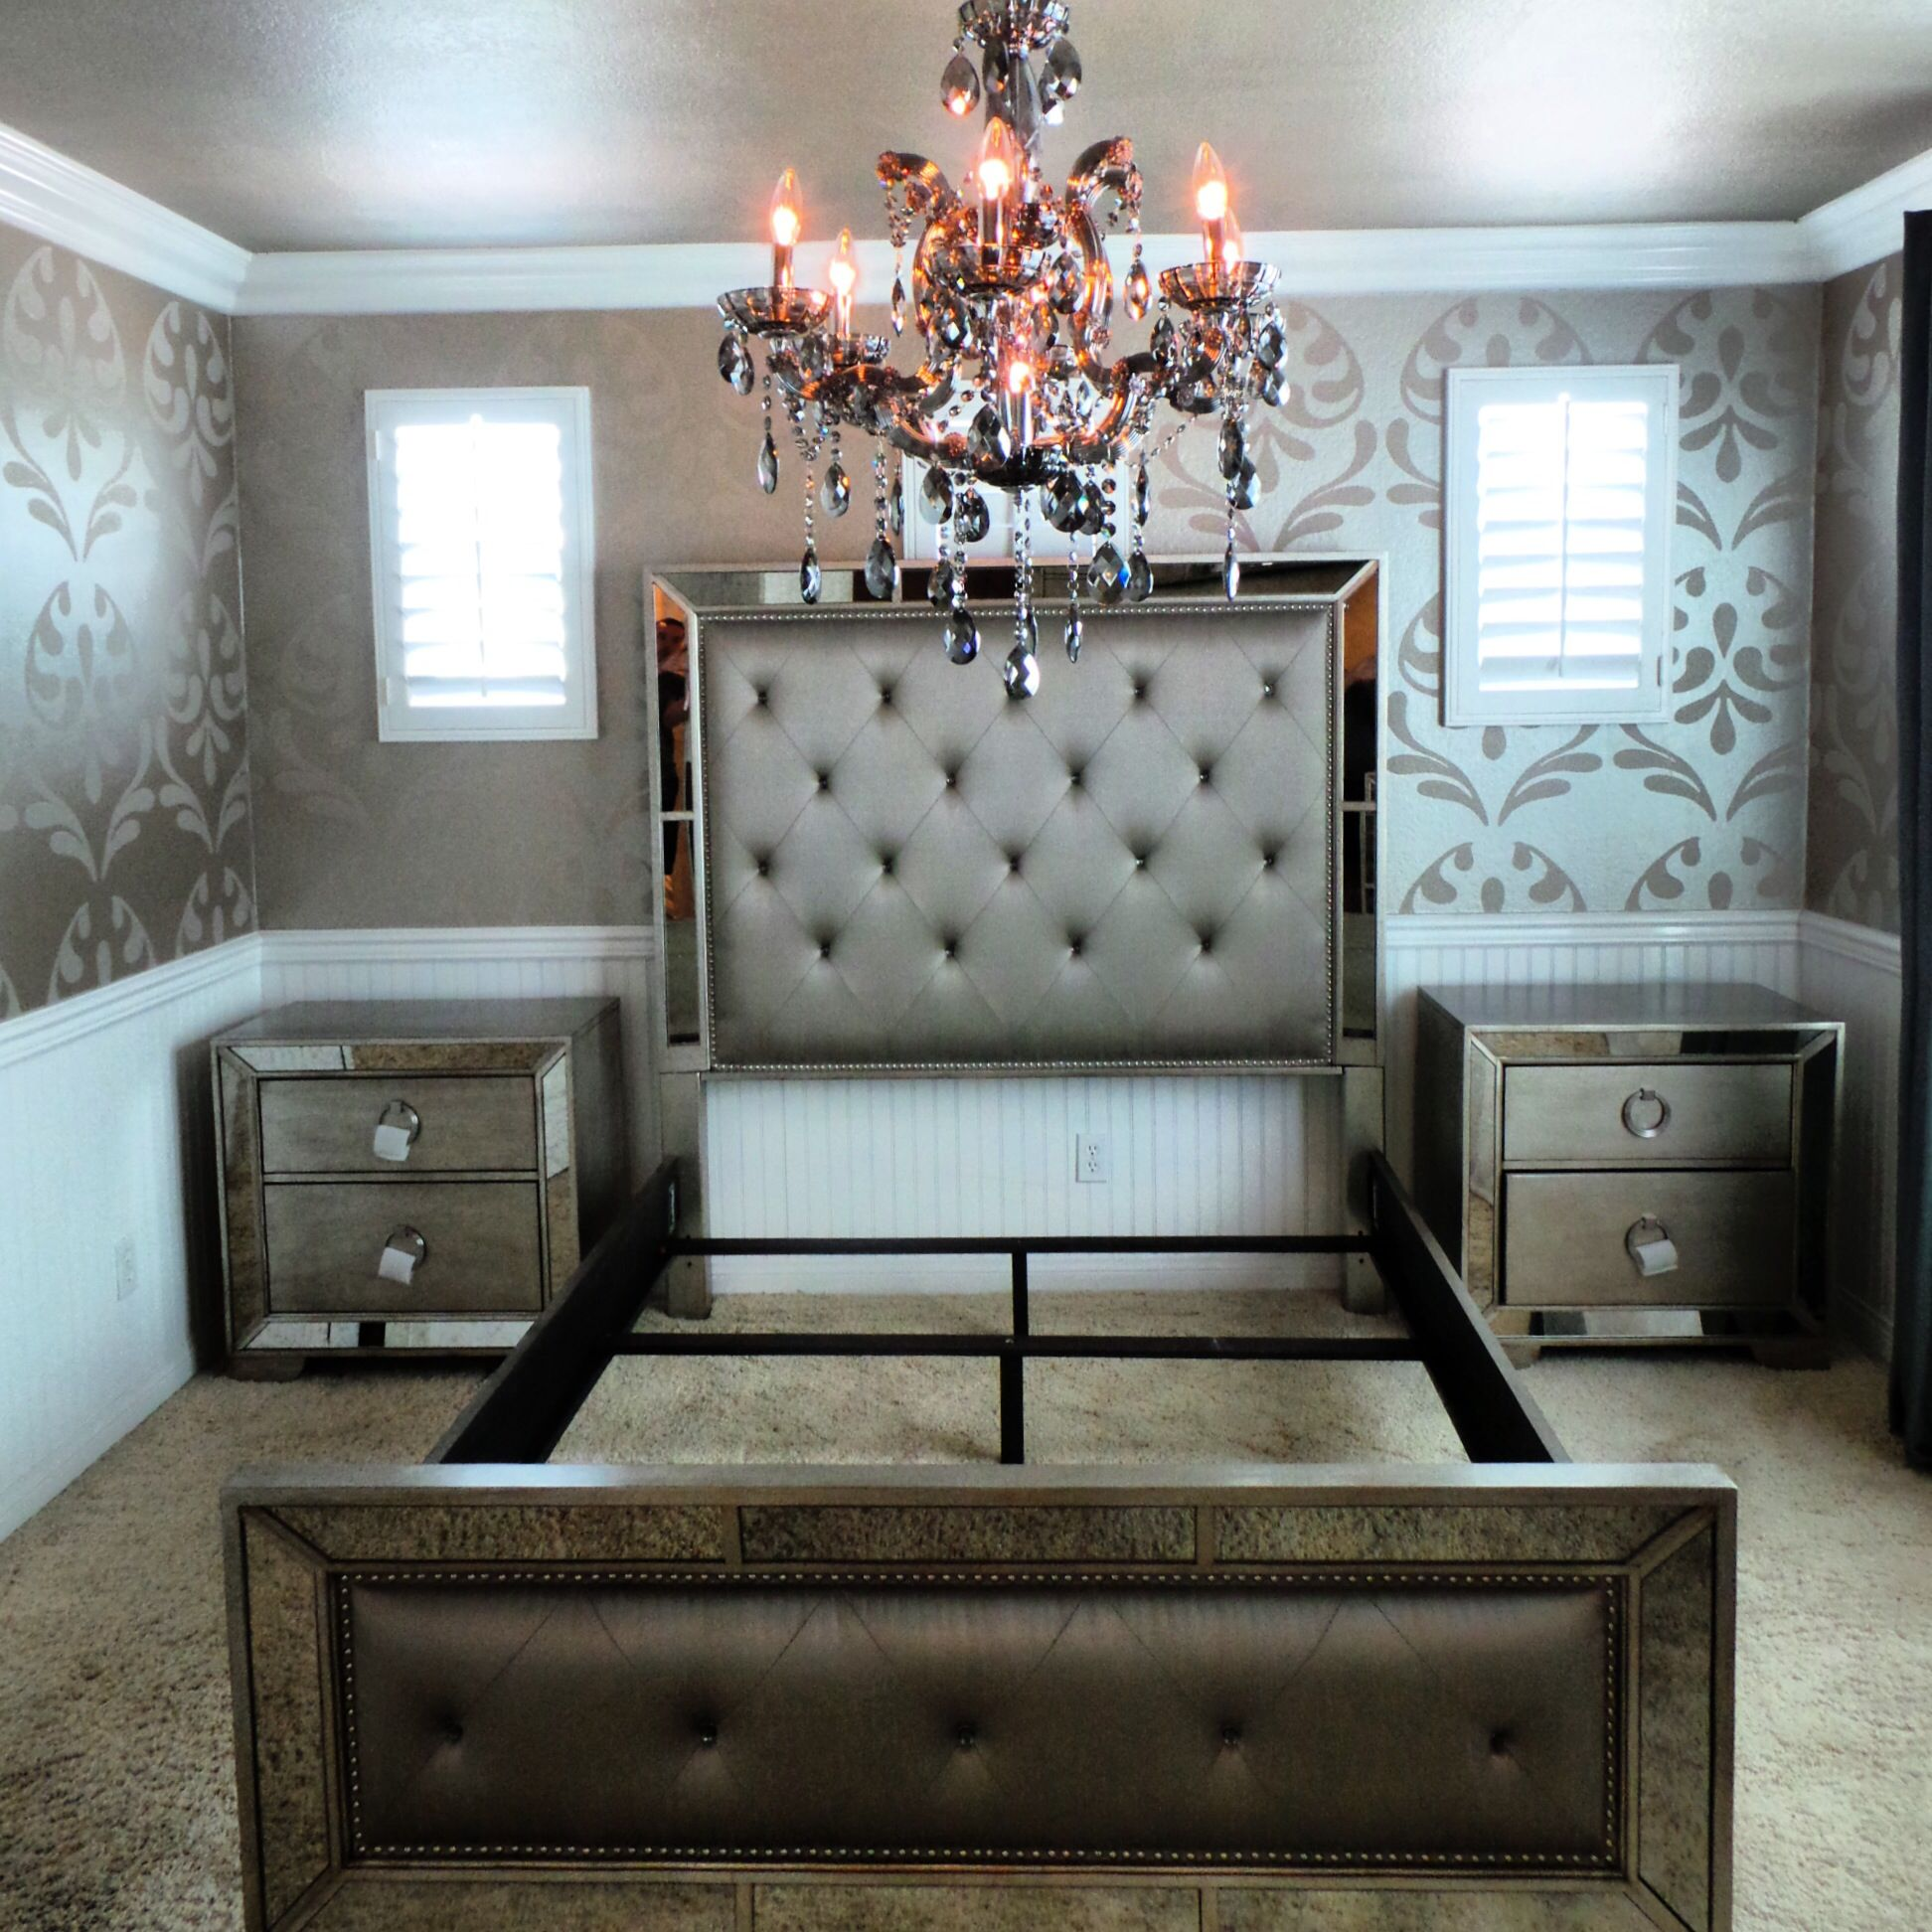 Guest room remodel still in progress. Enhance your home decor with ...